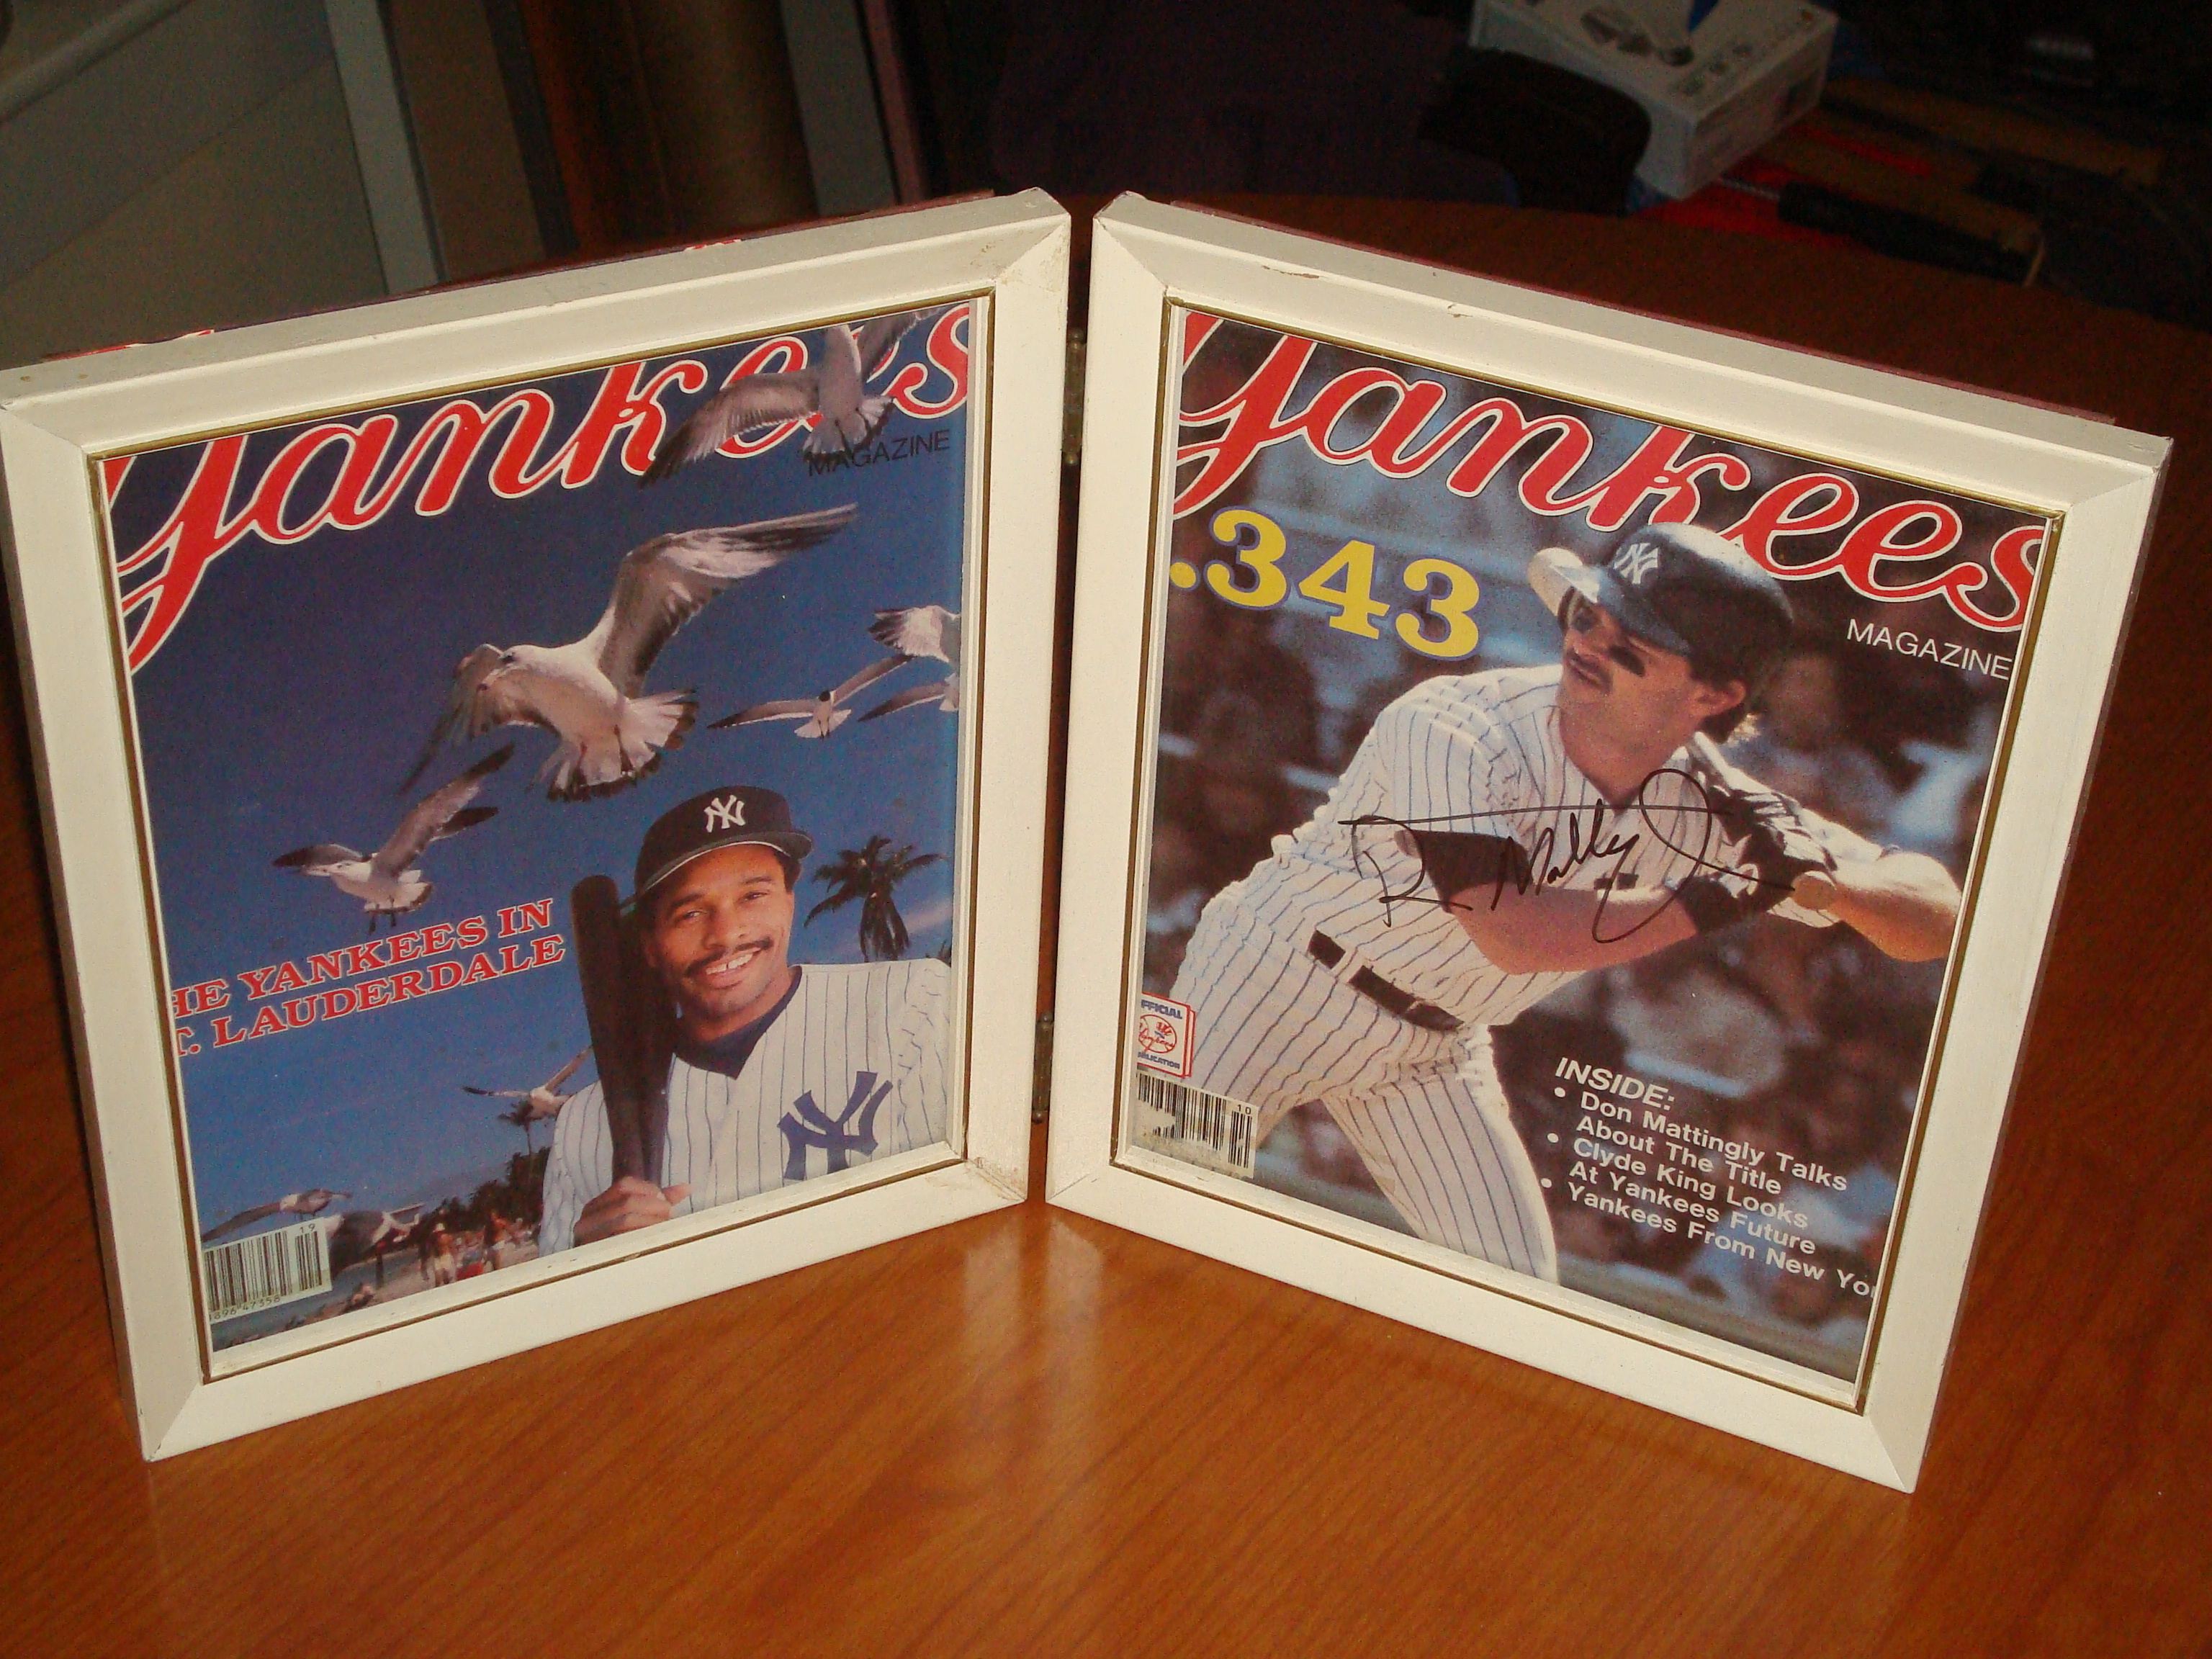 Official Framed Yankees Magazines featuring MLB Hall of Fame OF Dave Winfield and Autograph 1B Don Mattingley